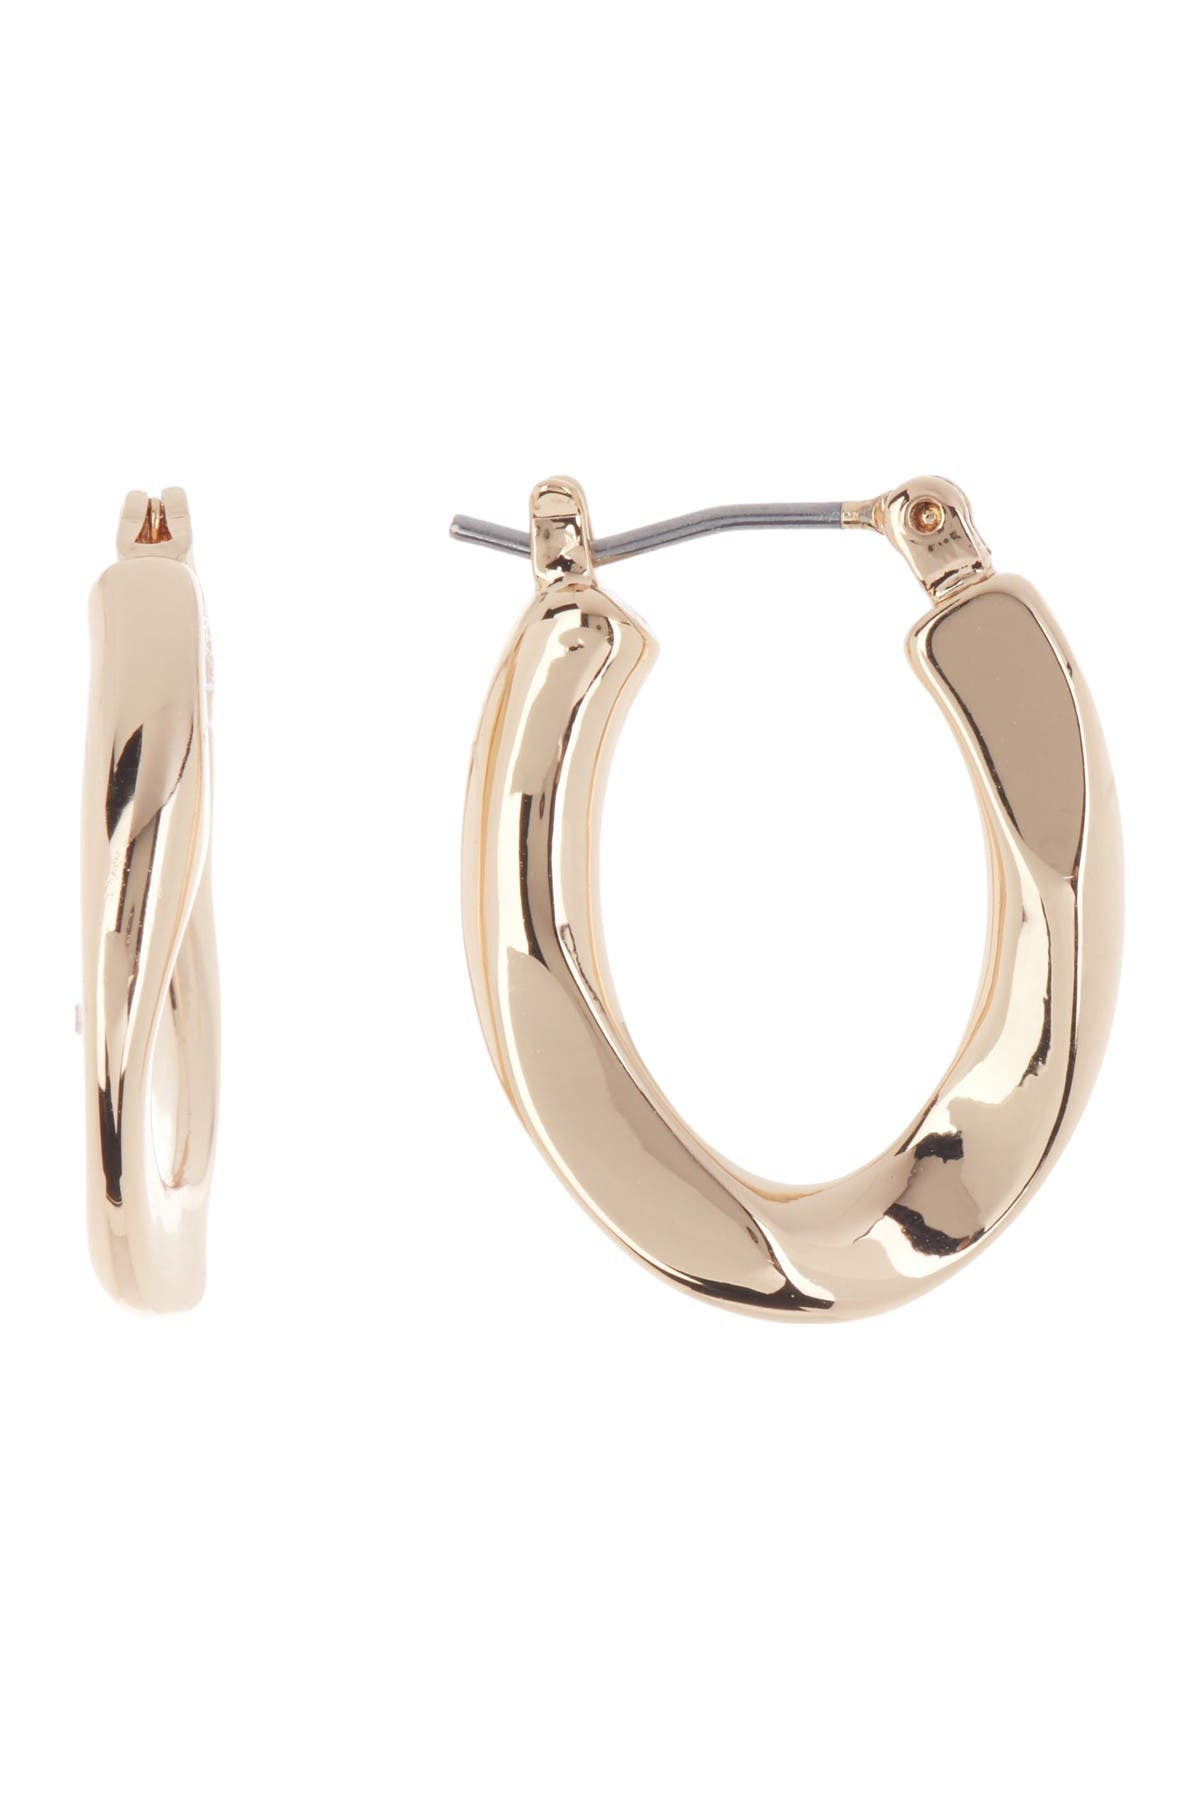 Image of Rebecca Minkoff Gold Plated Brass Twisted Mini Hoop Earrings